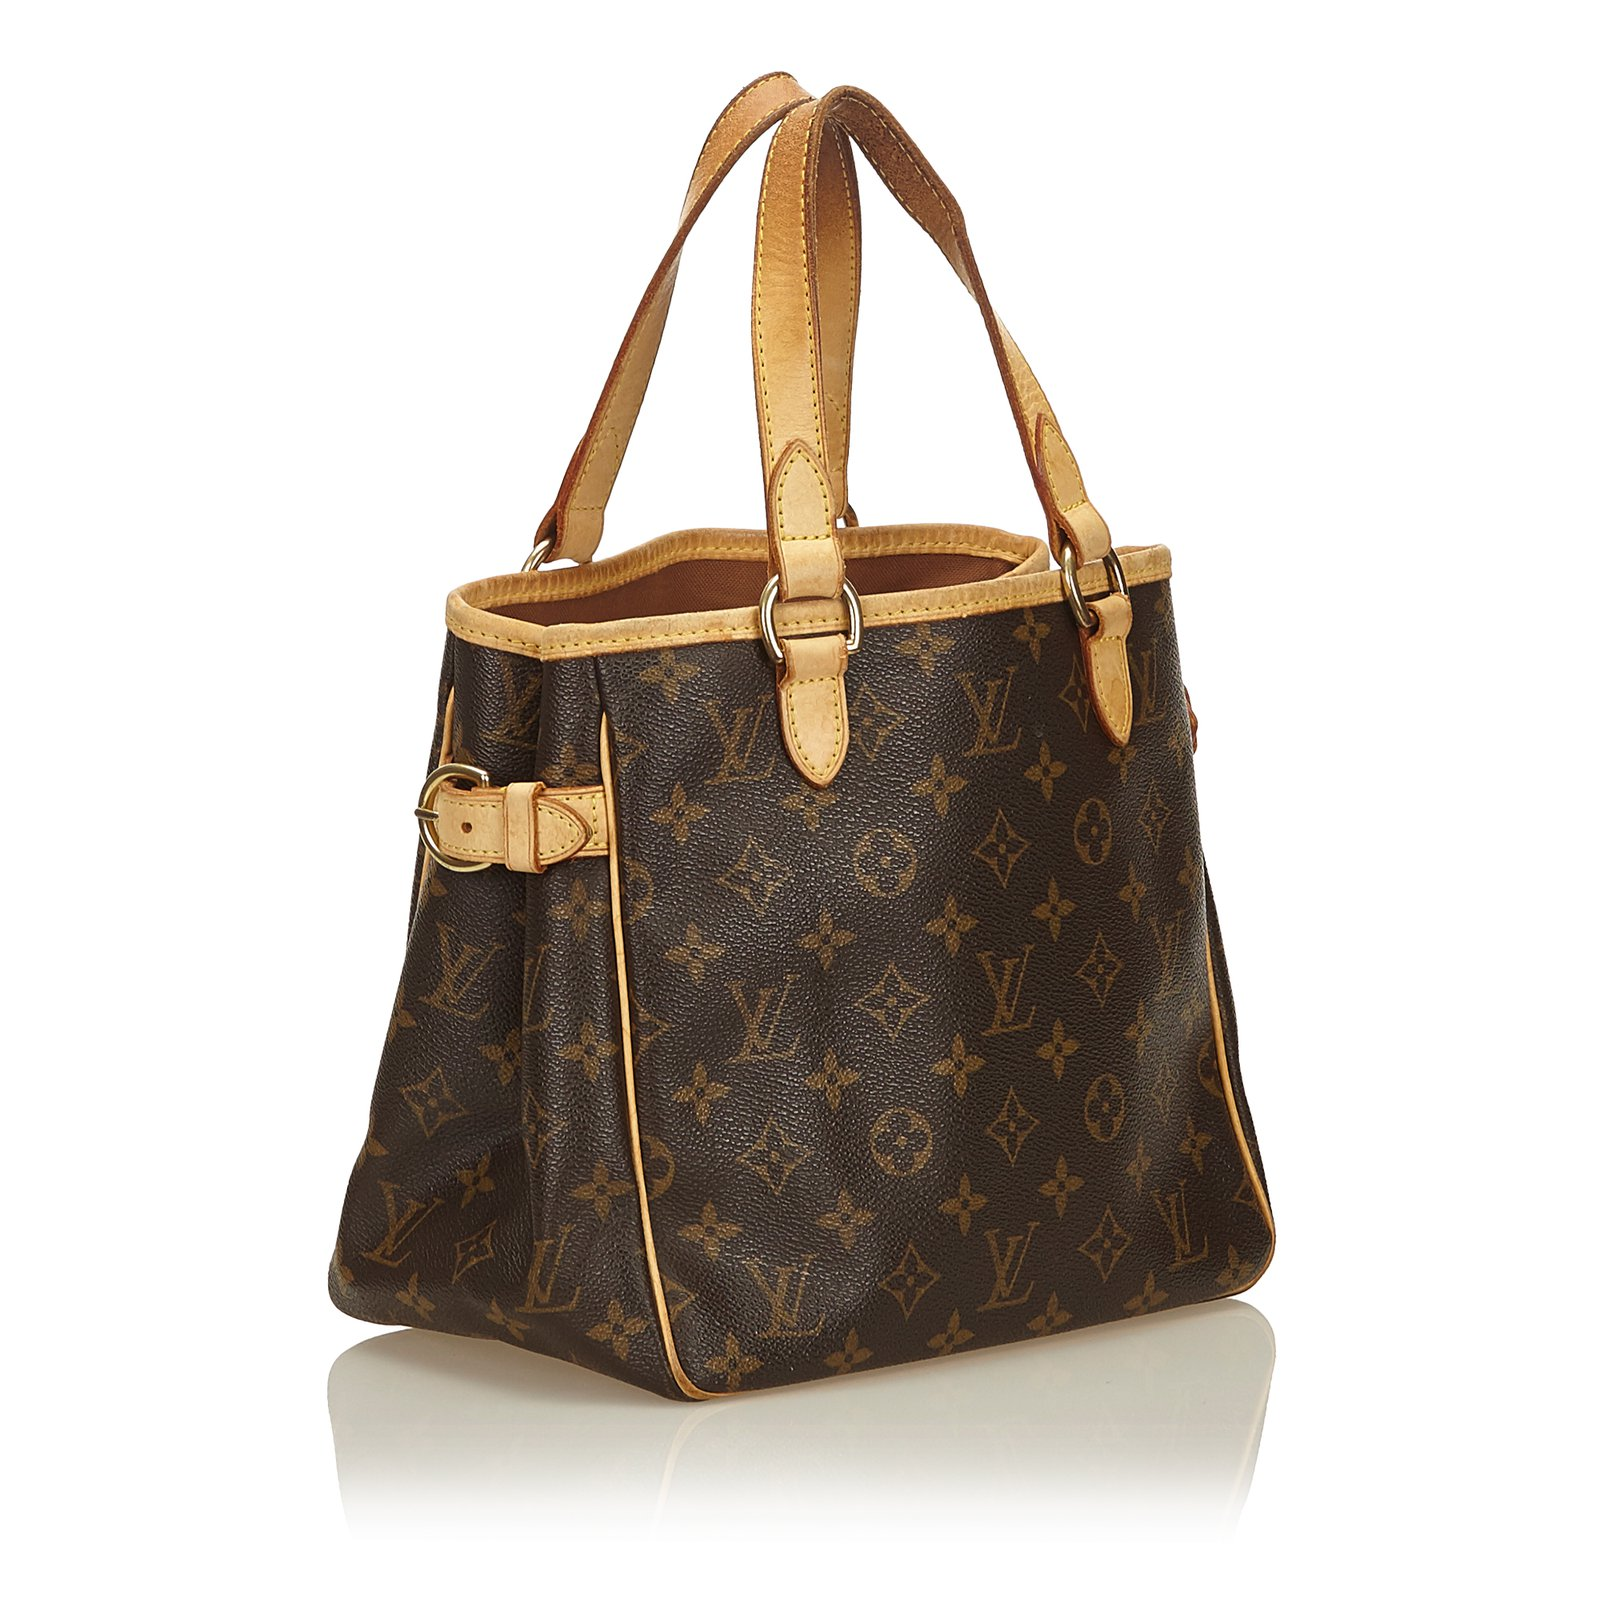 2c7d0f0c7d4c Facebook · Pin This. Louis Vuitton Monogram Batignolles Horizontal ...